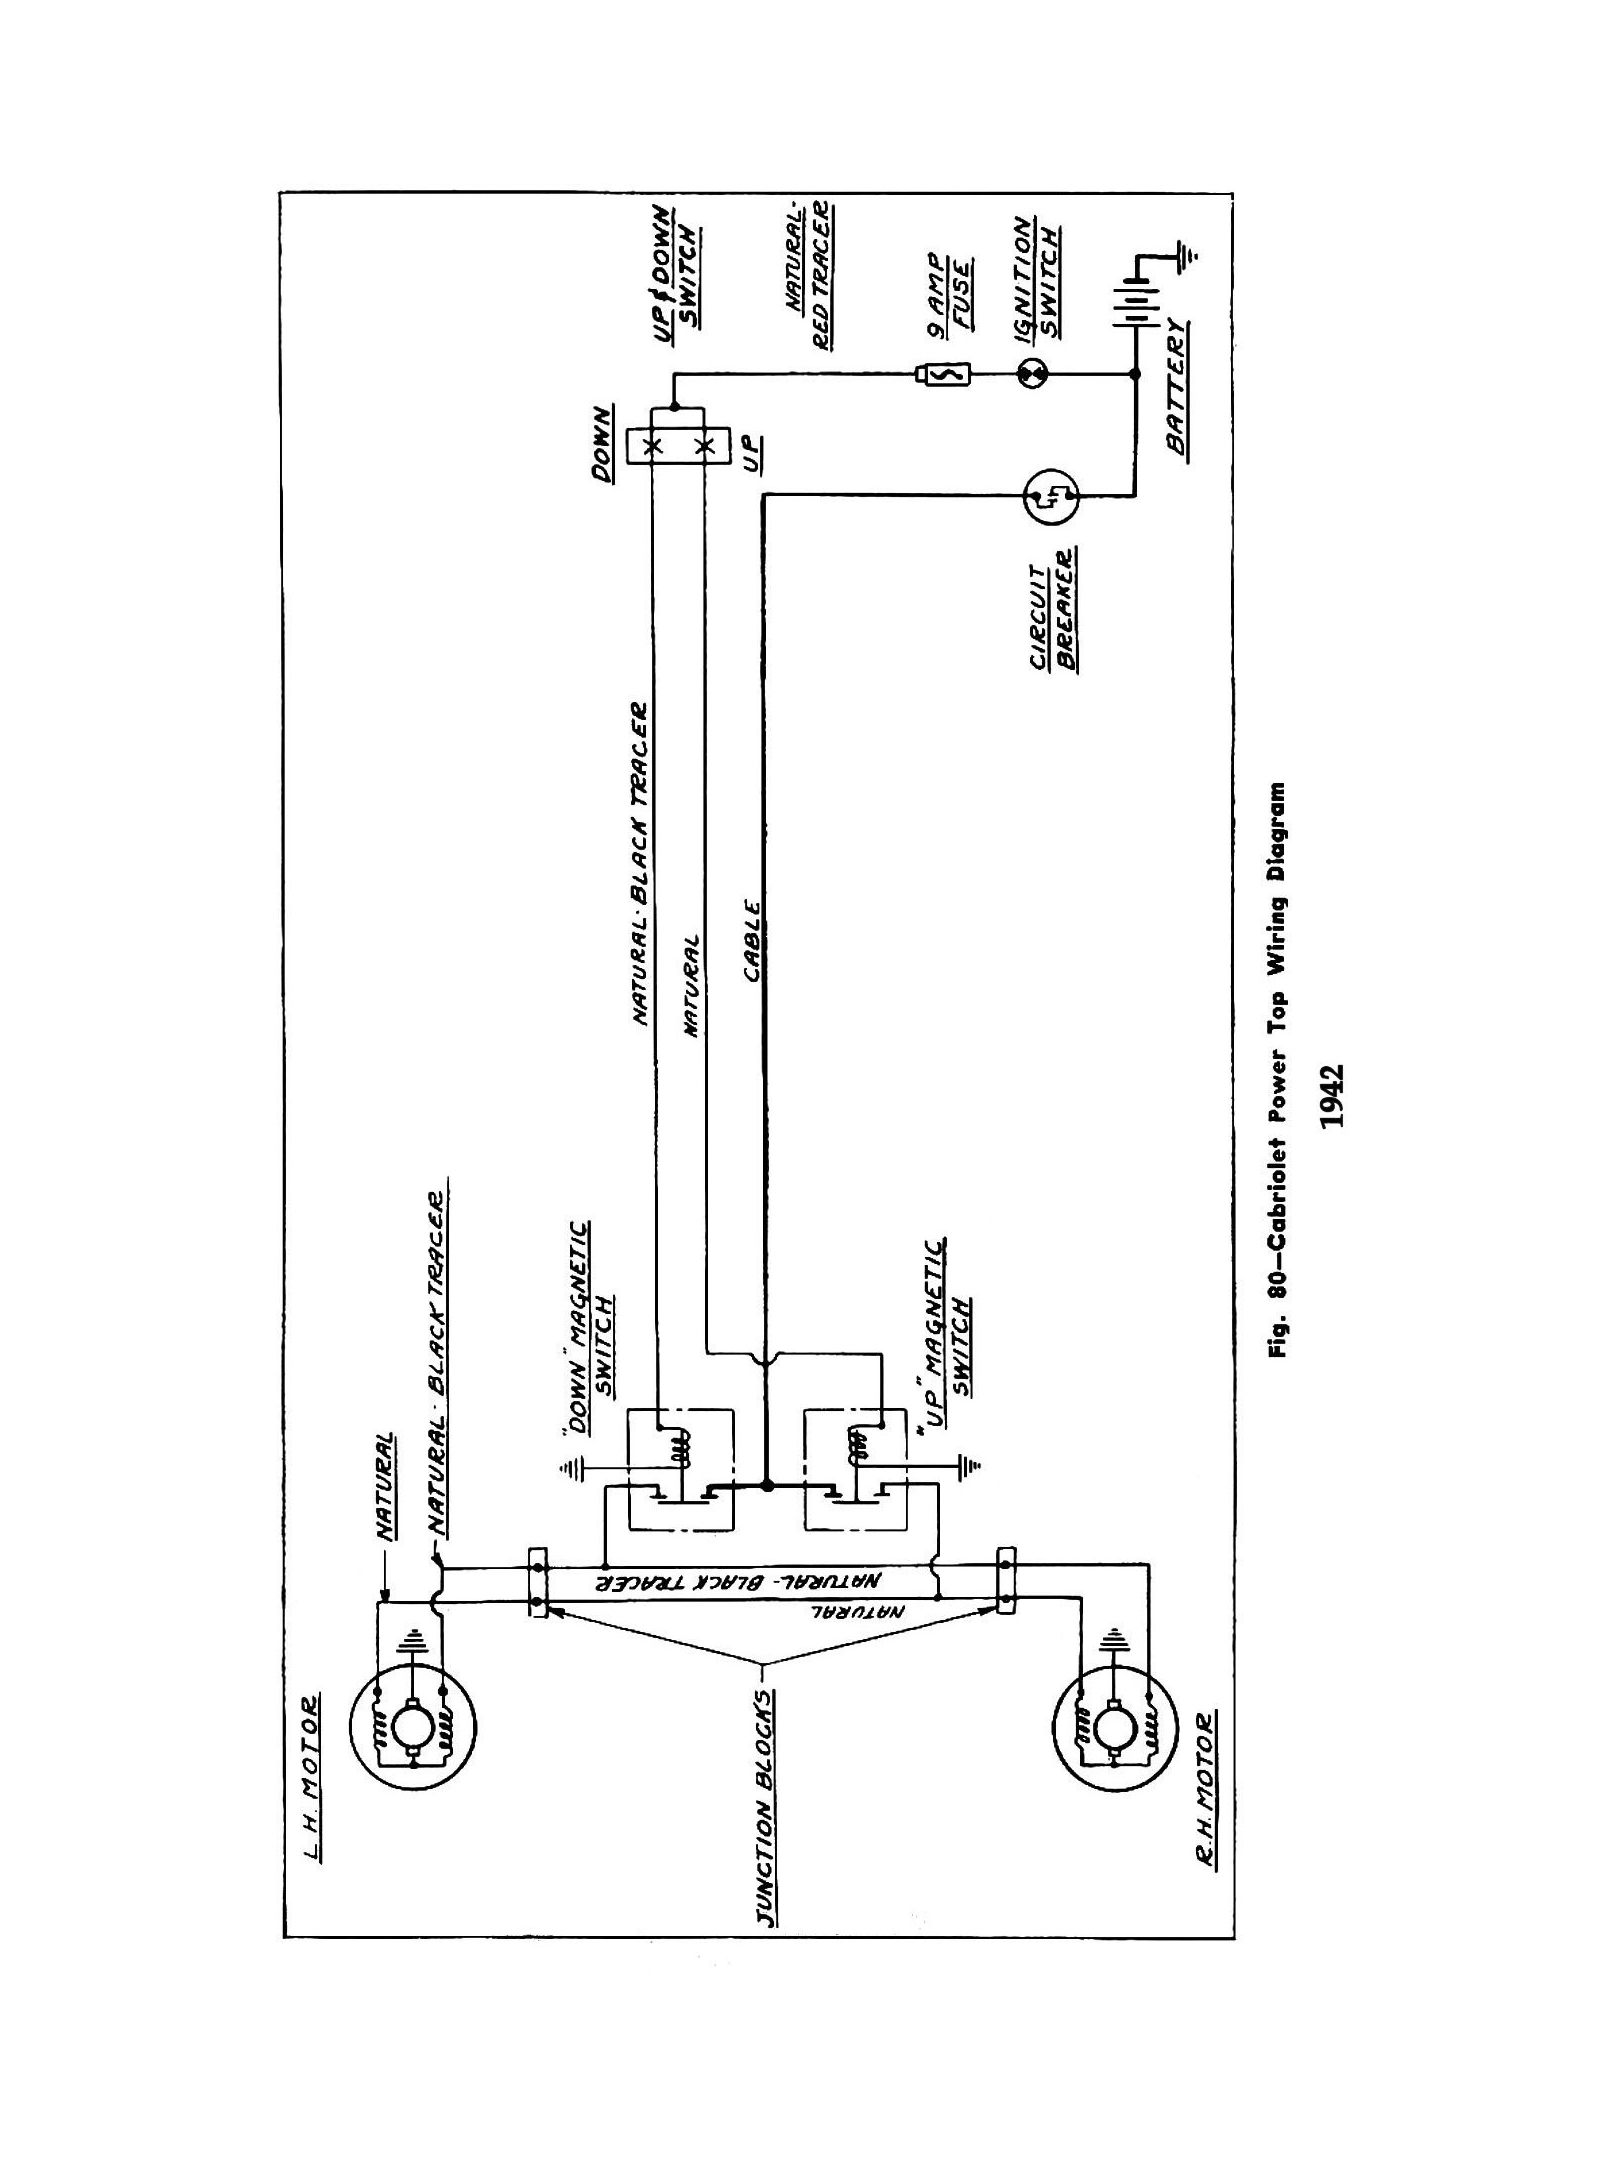 Chevy Wiring Diagrams 72 Dodge Truck Ignition Switch 1942 Cabriolet Power Top